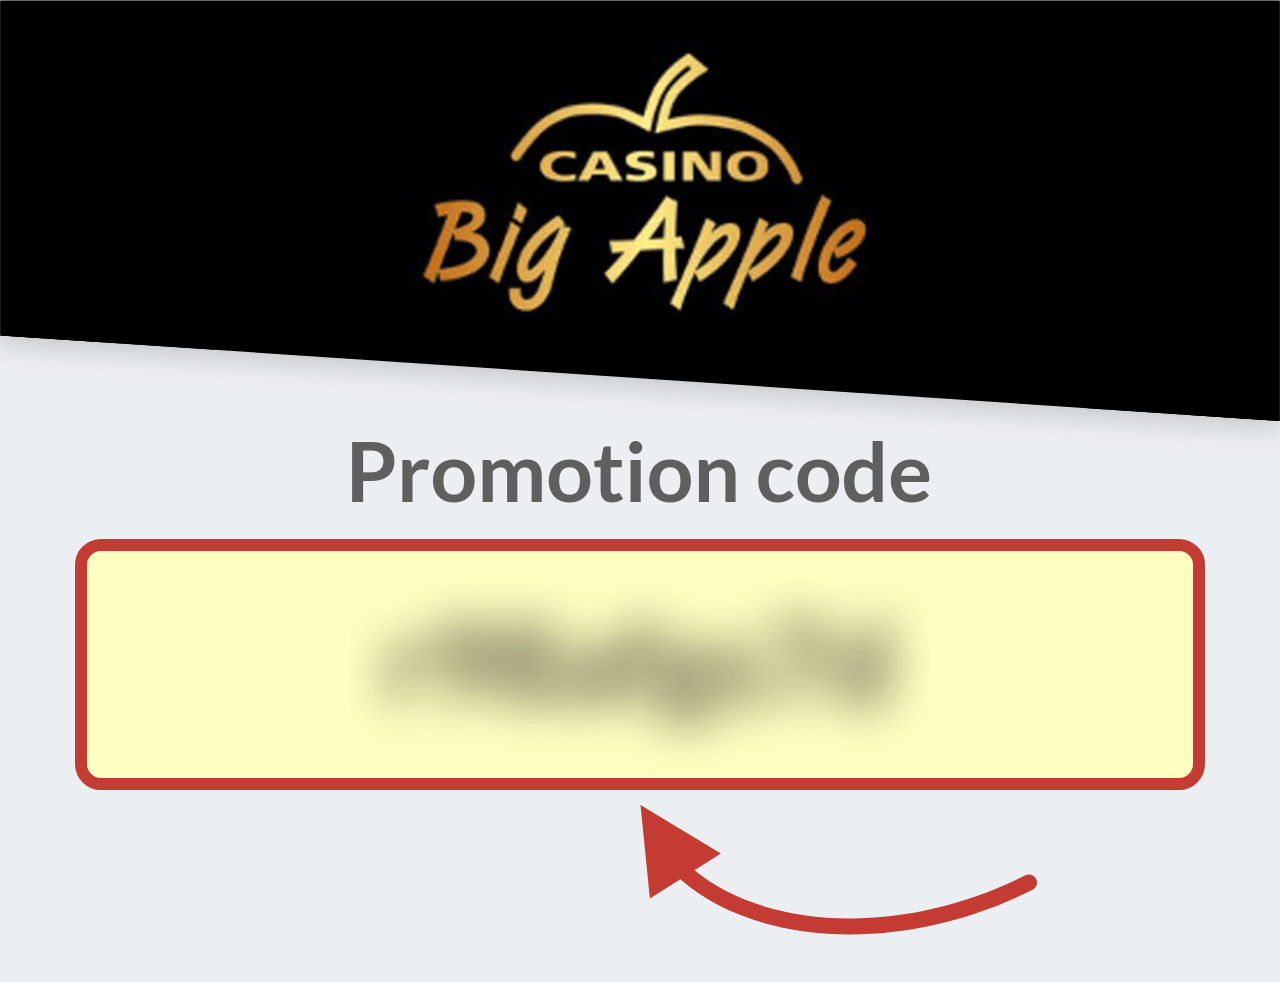 Casino Big Apple Promo Code